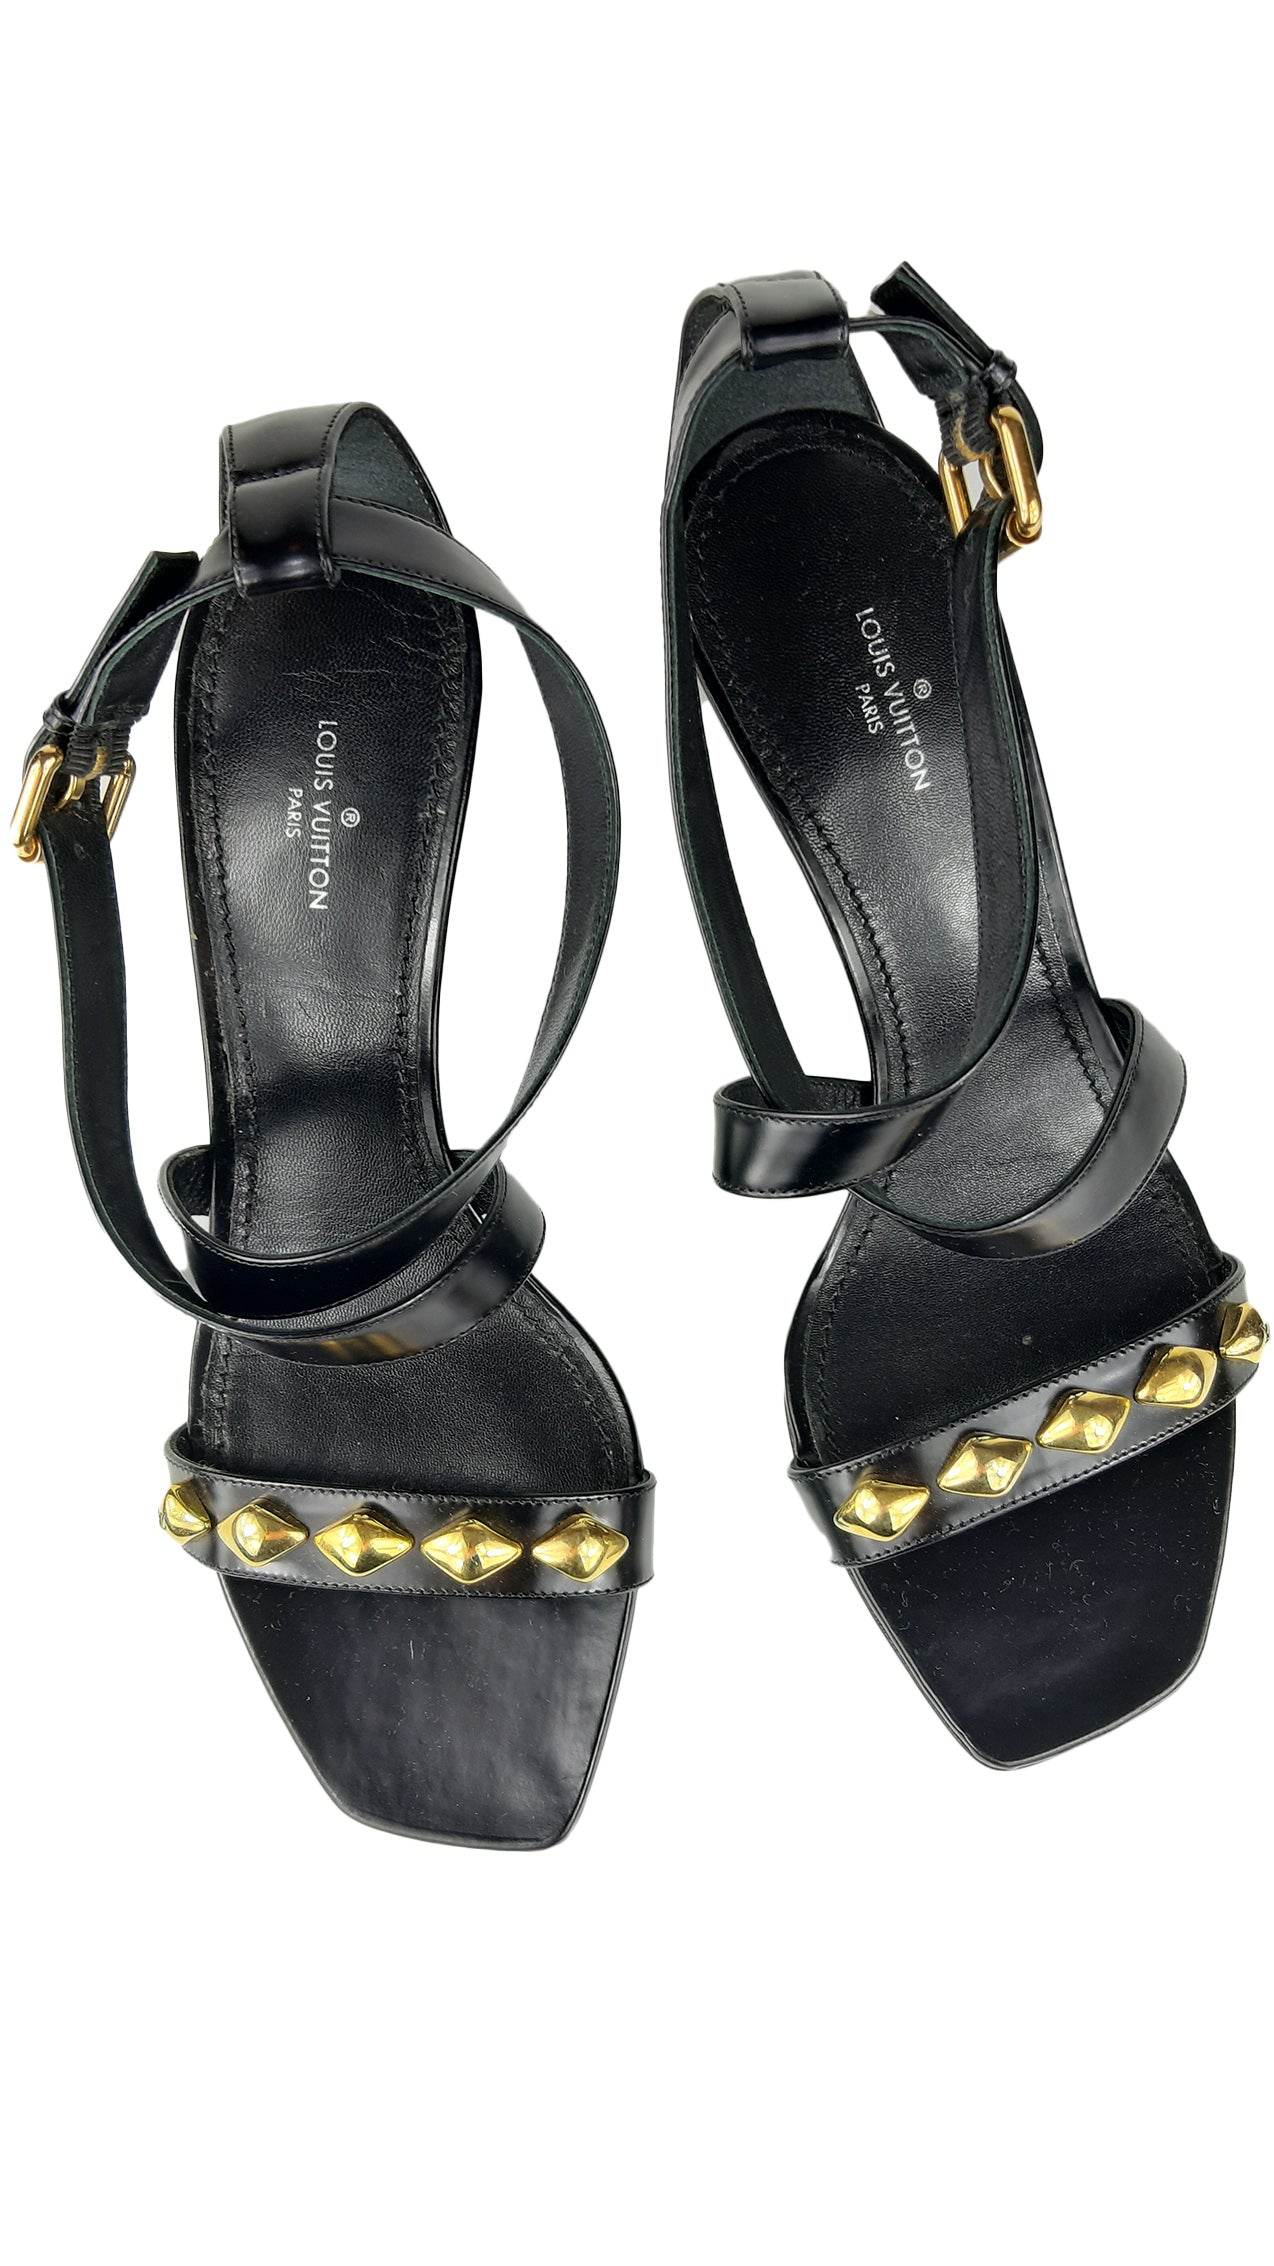 Louis Vuitton Black Sandals with Golden Details Size 38,5 (EU)